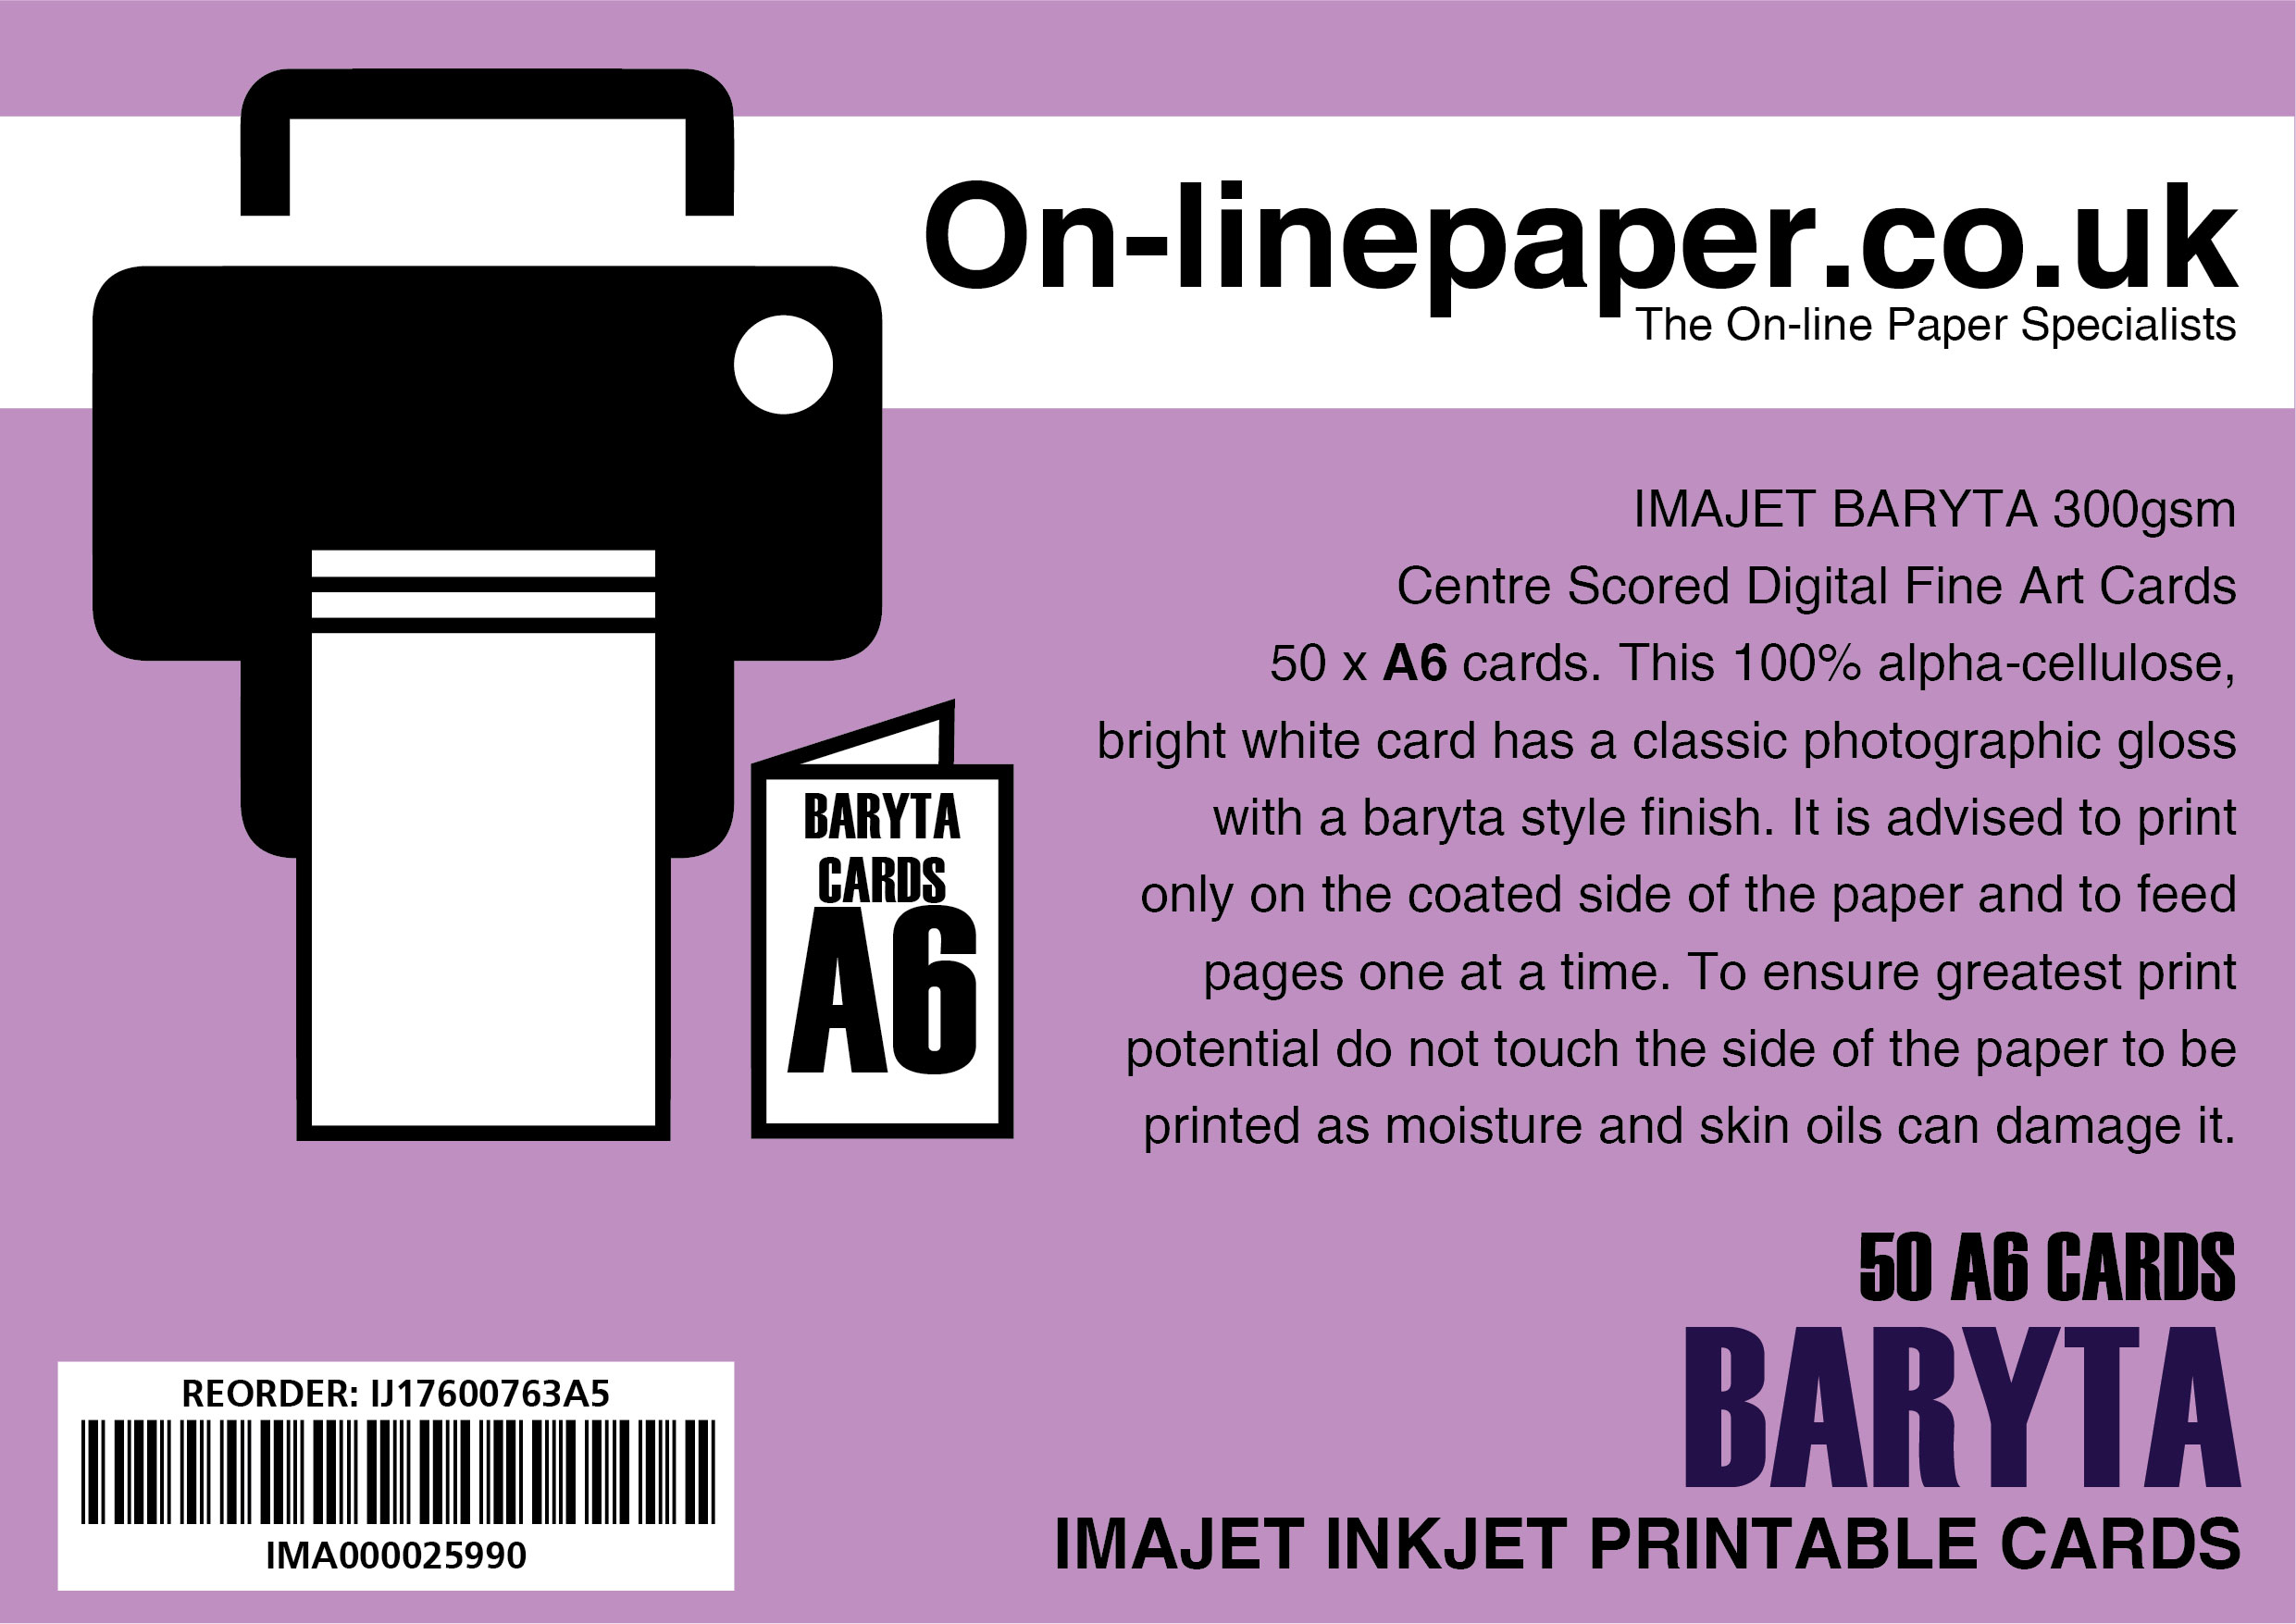 IMAJET BARYTA 300gsm Centre Scored Digital Fine Art Cards 50 x A5 cards